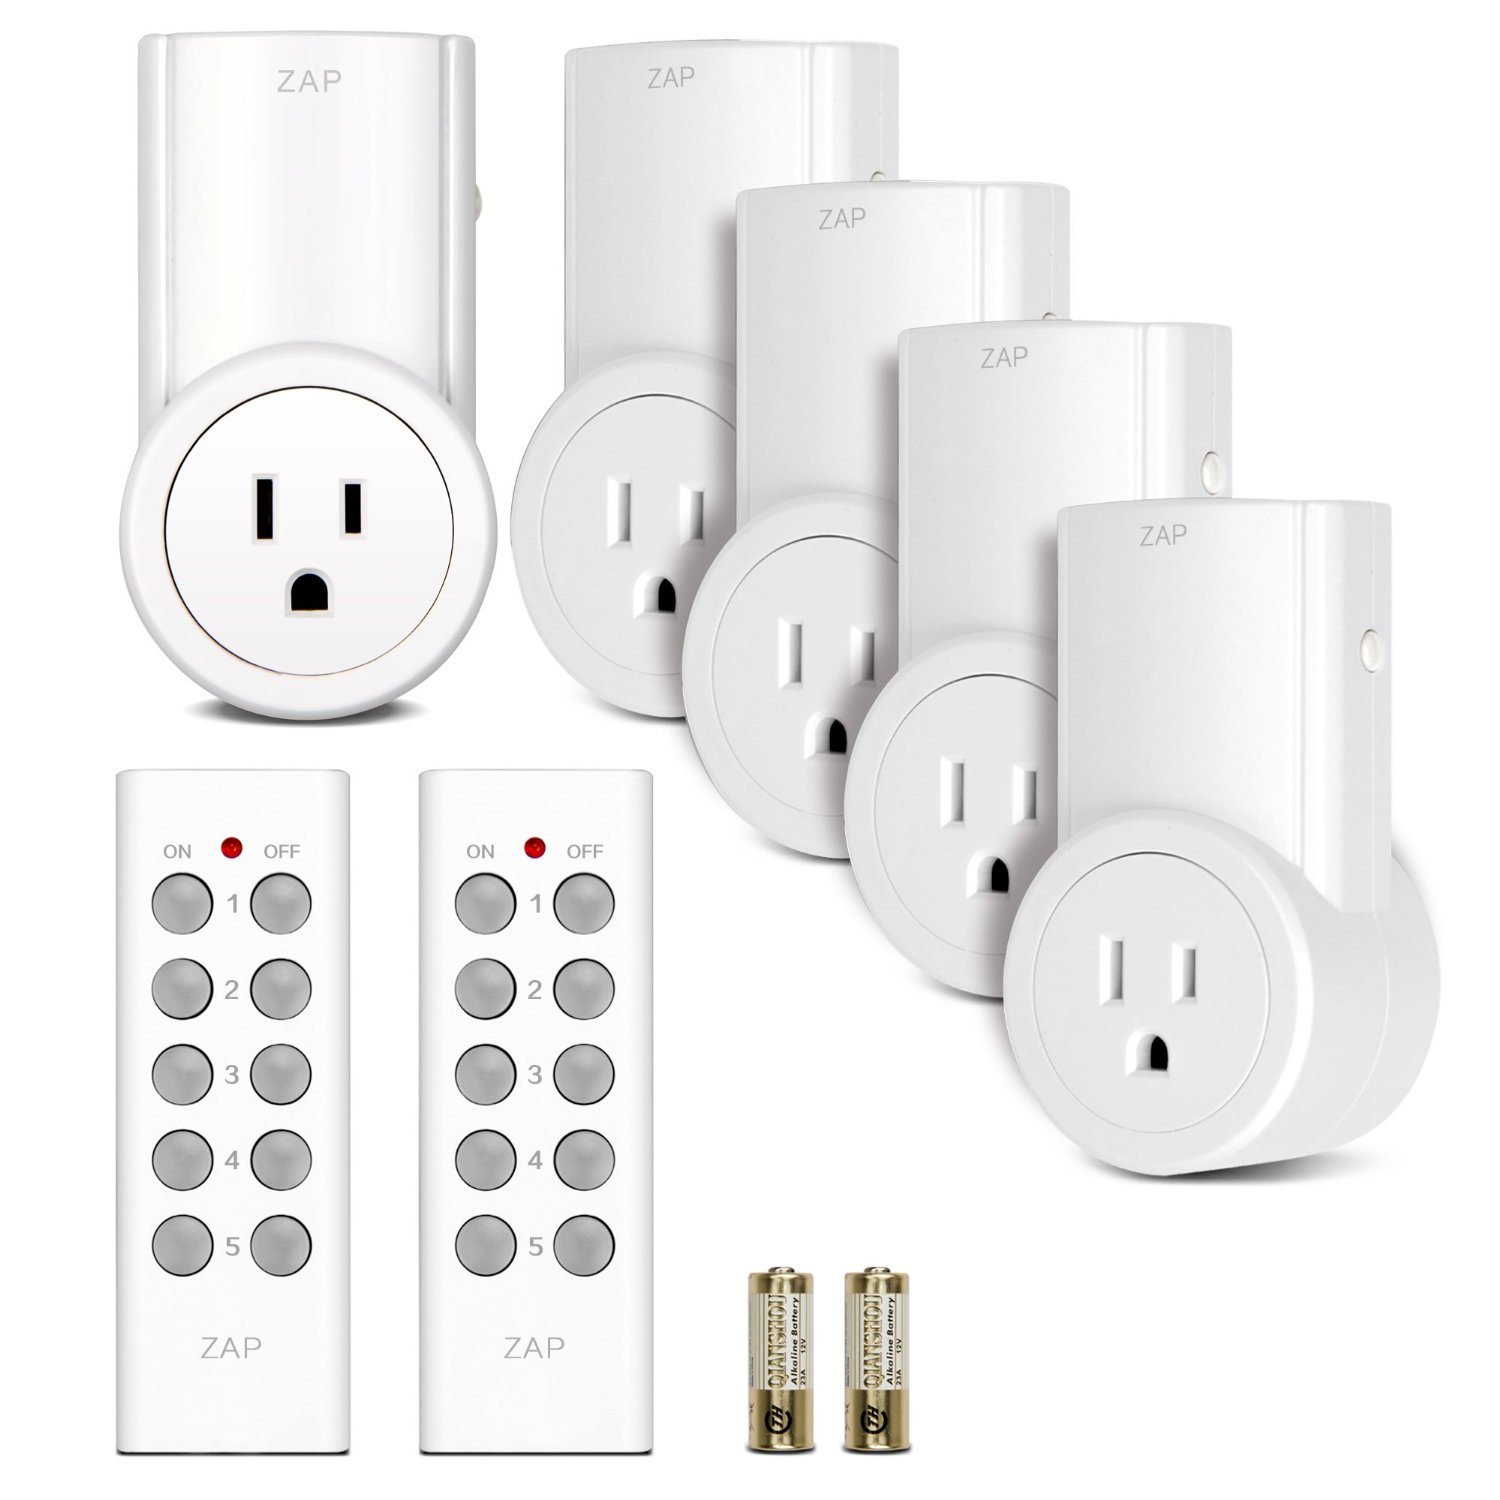 Lee.org » Blog Archive ZAP L-Series Remote Control Electrical ...